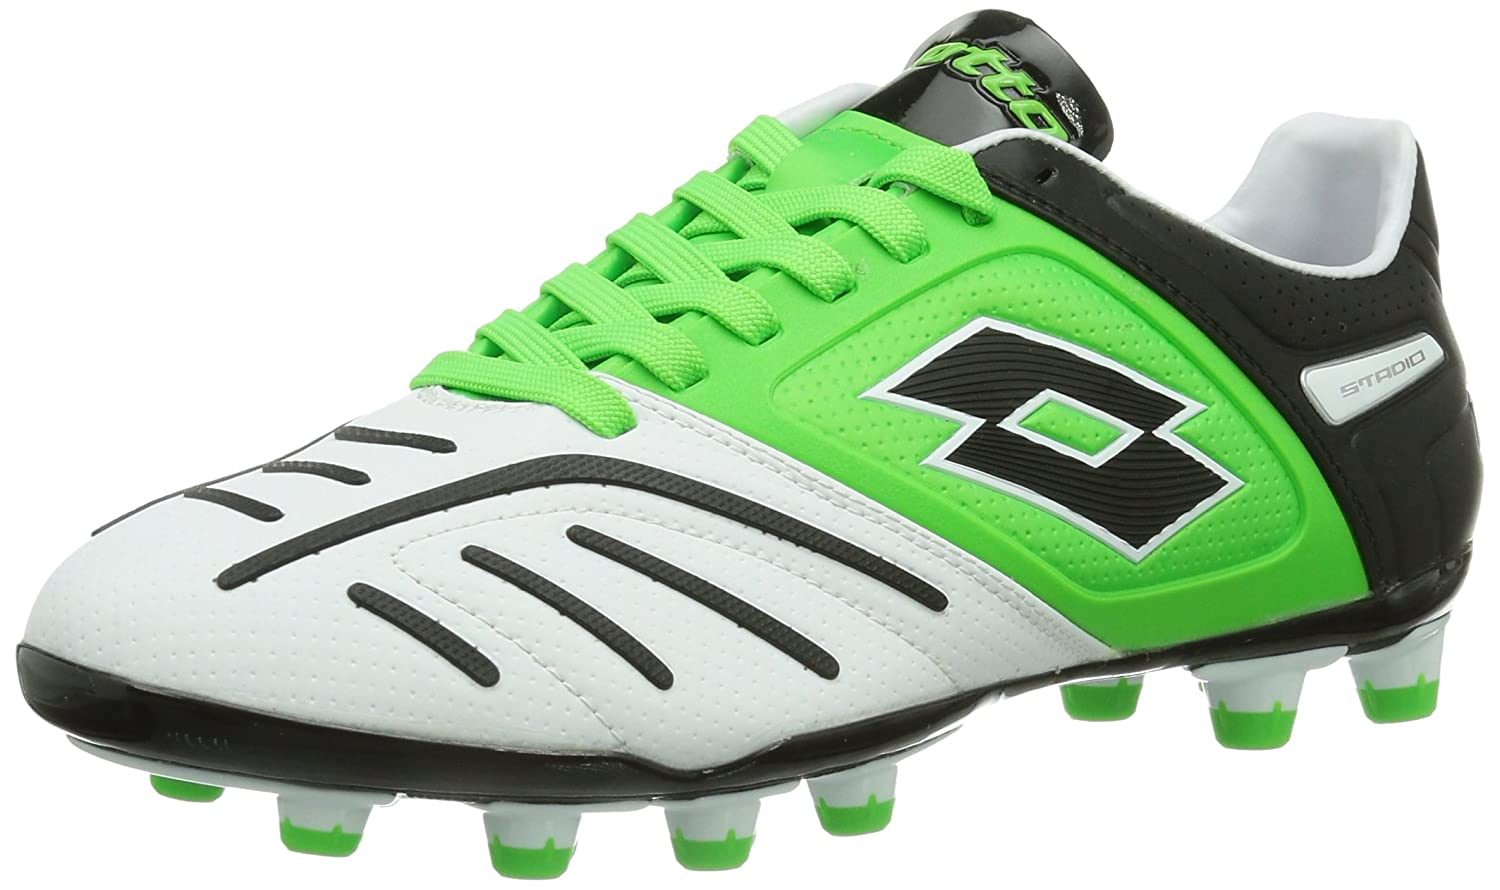 Lotto Sport Stadio Potenza V 200 FG, Chaussures de Football homme:  Amazon.fr: Chaussures et Sacs